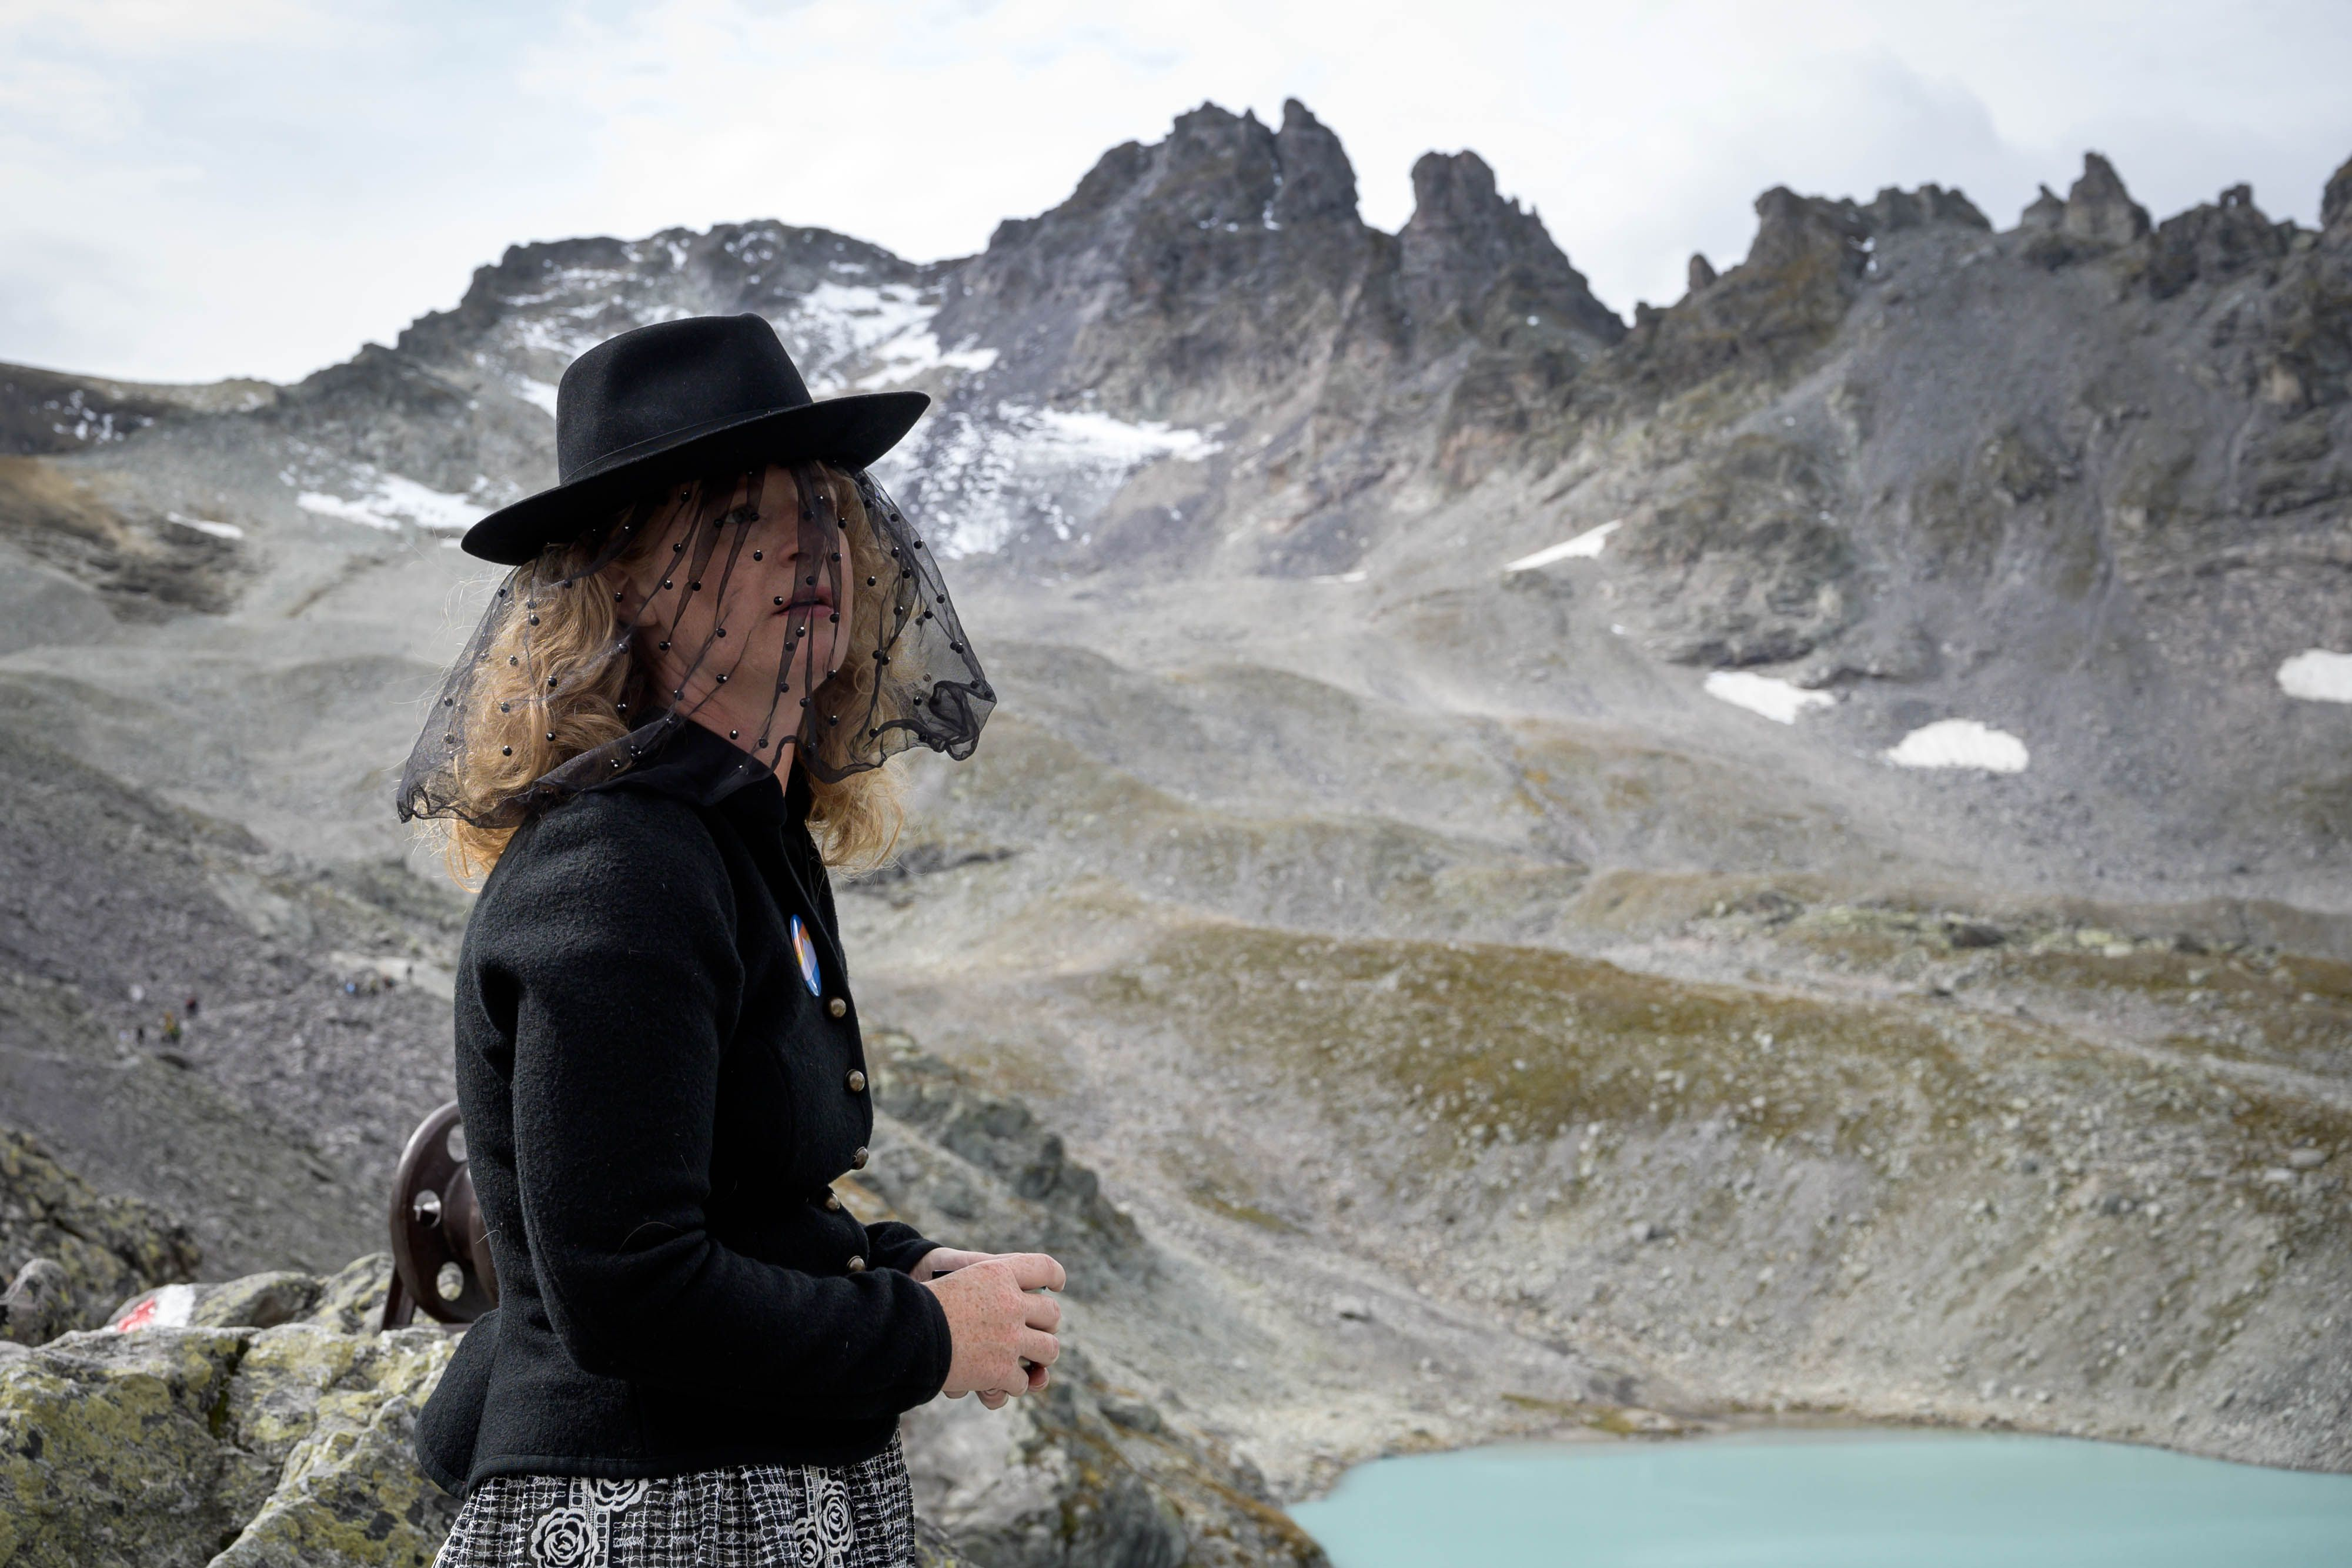 In photos: Hundreds mourn Pizol glacier's loss to global warming in Swiss Alps